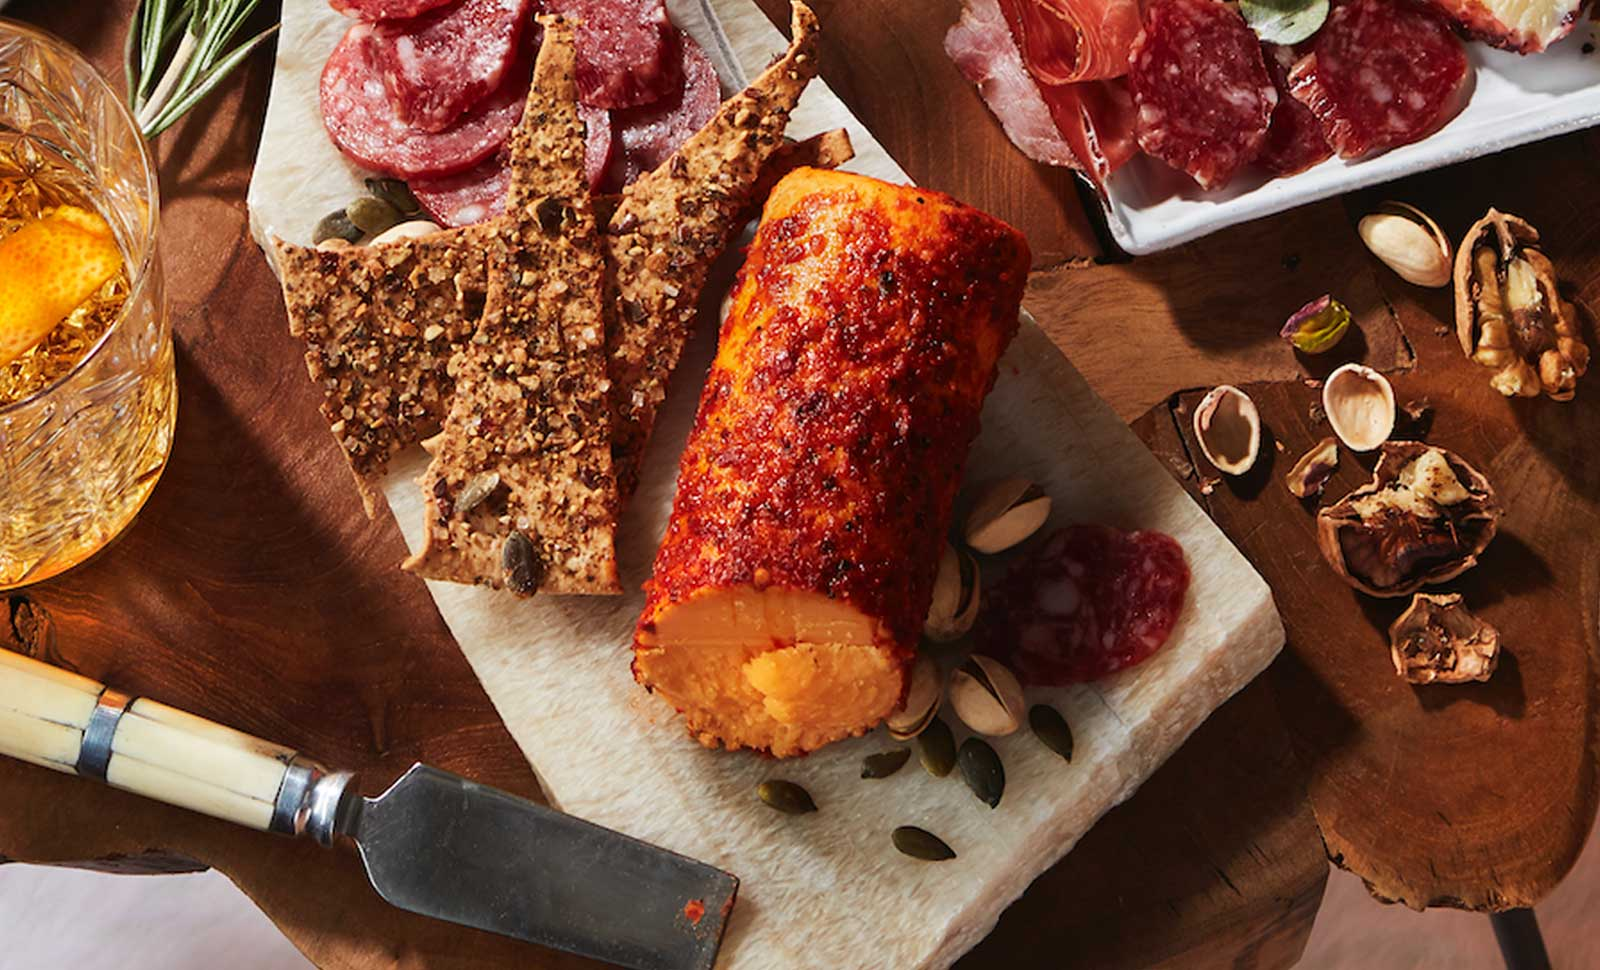 A Piri Piri Seasoned Cheddar Log surounded by an assortment of nuts, charcuterie and crackers